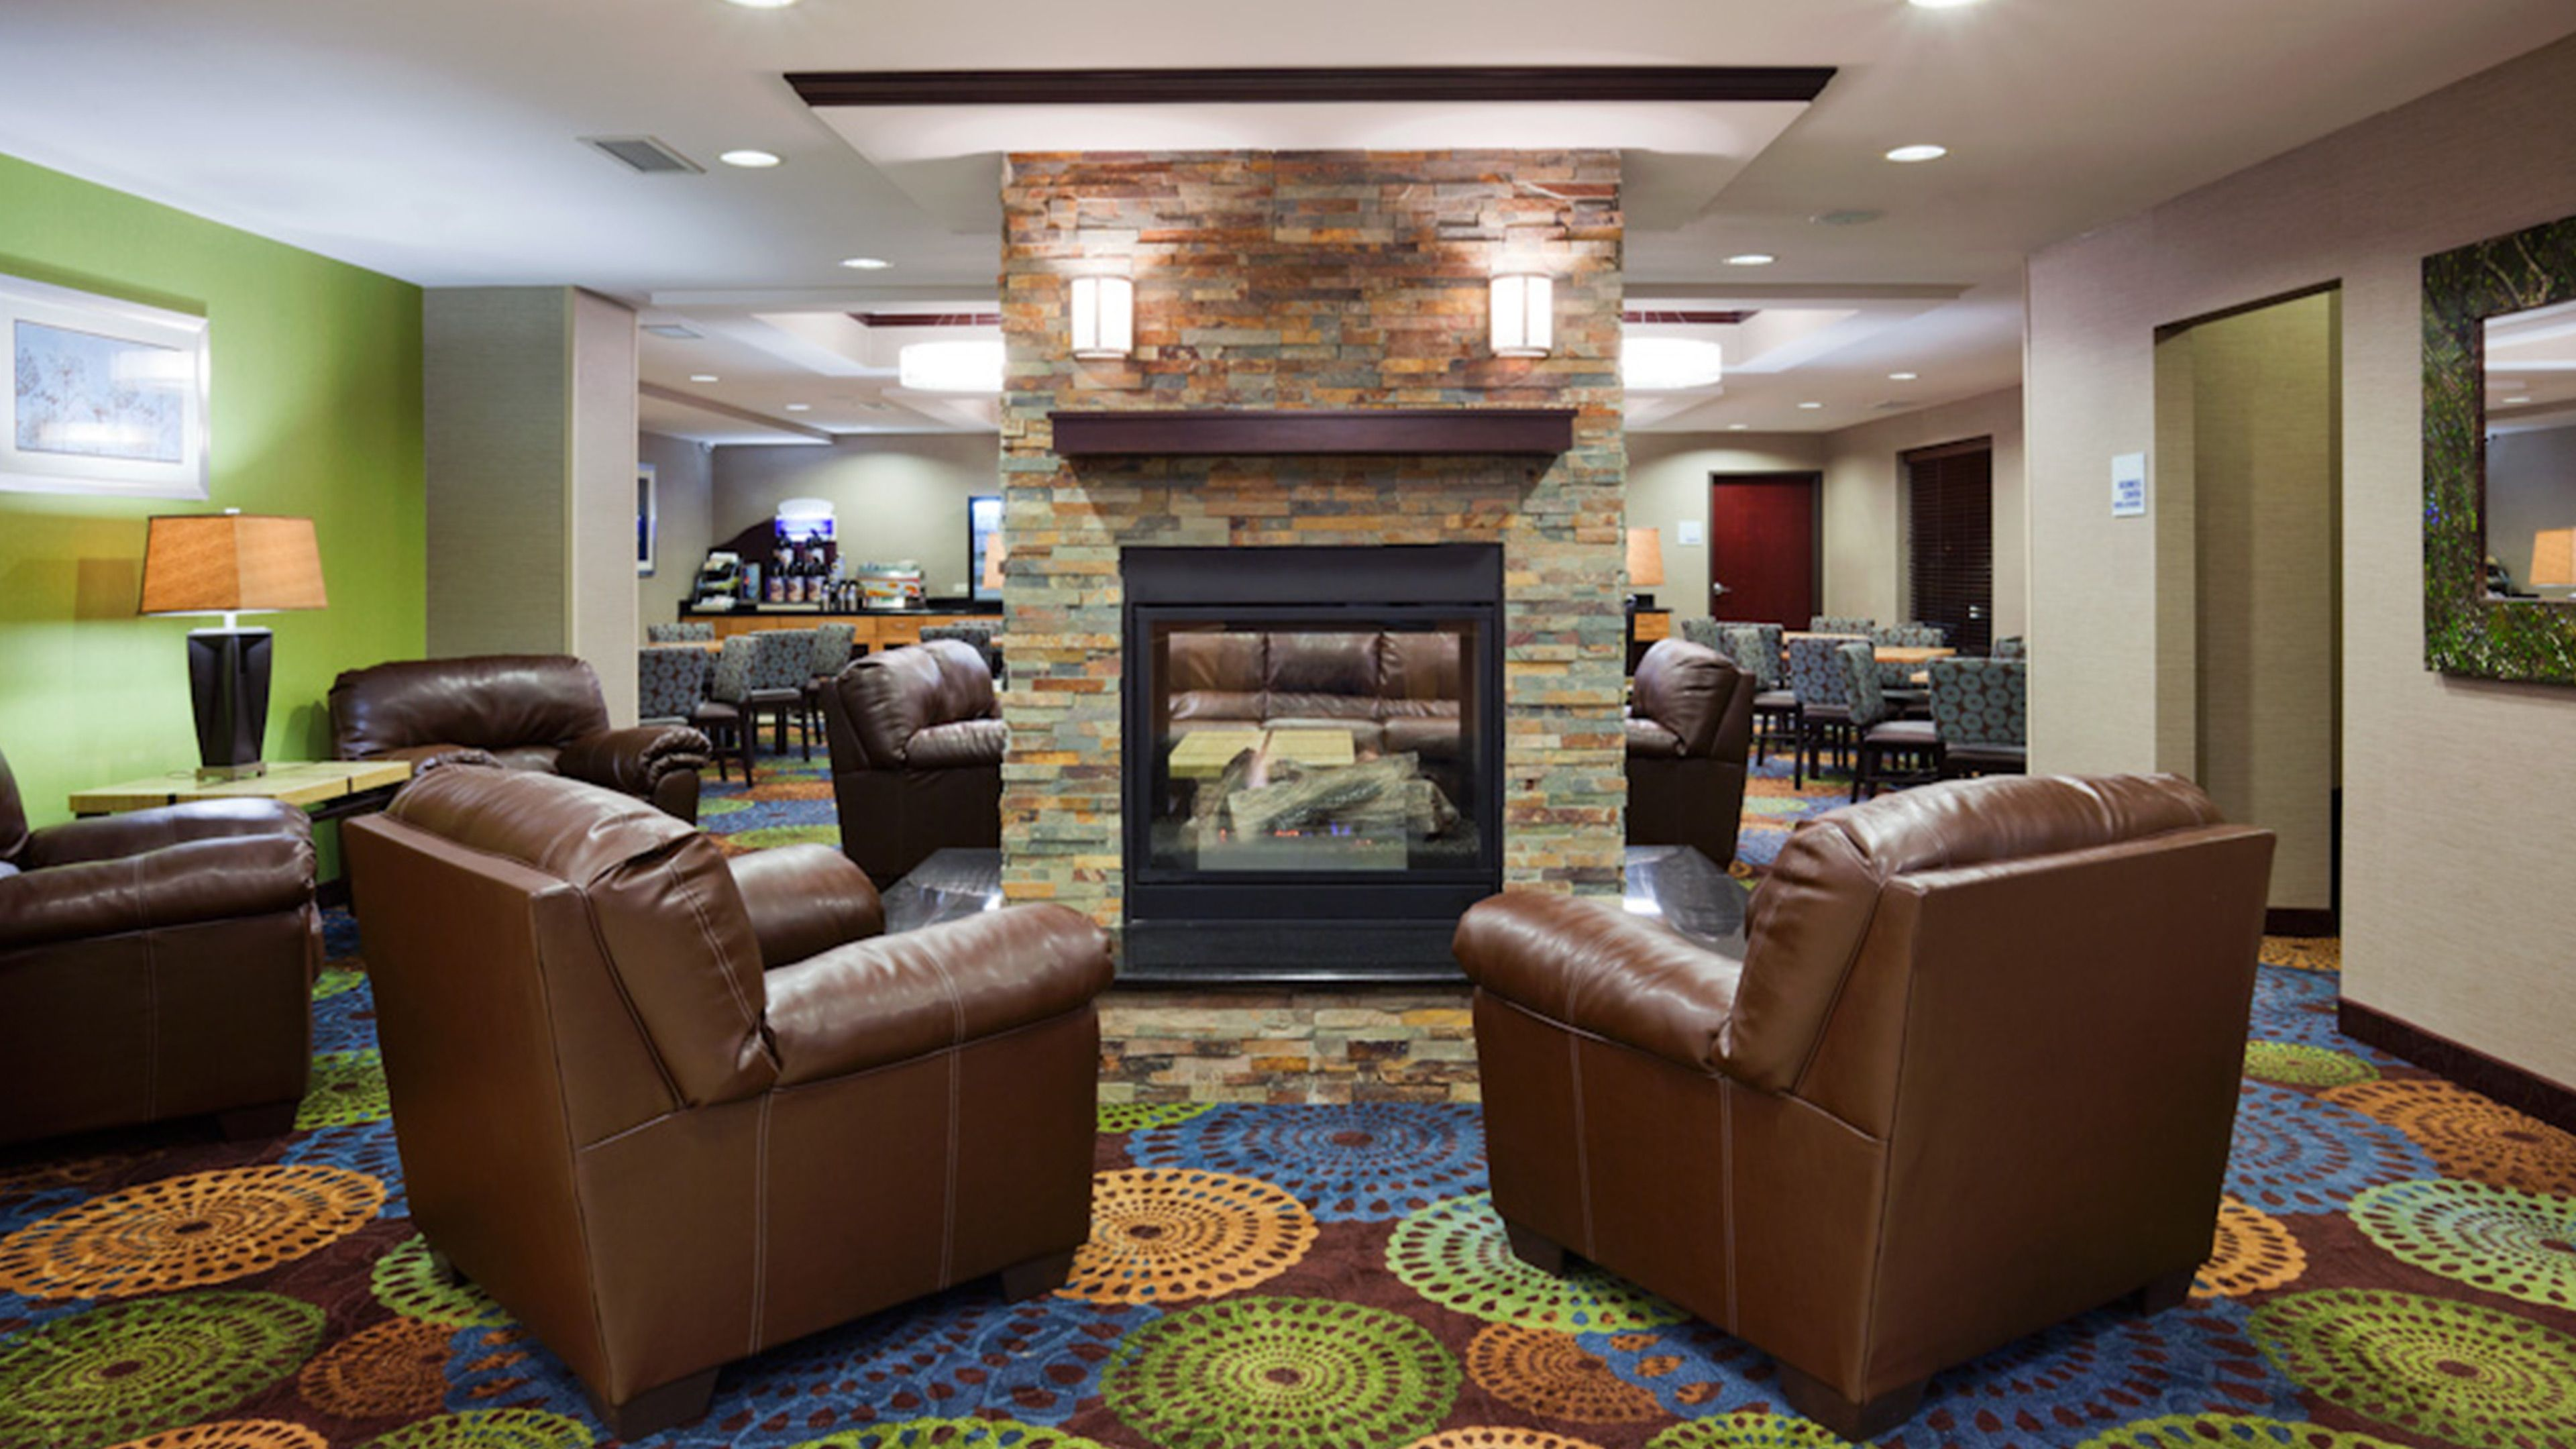 Holiday Inn Express & Suites Rochester - Mayo Clinic Area image 4